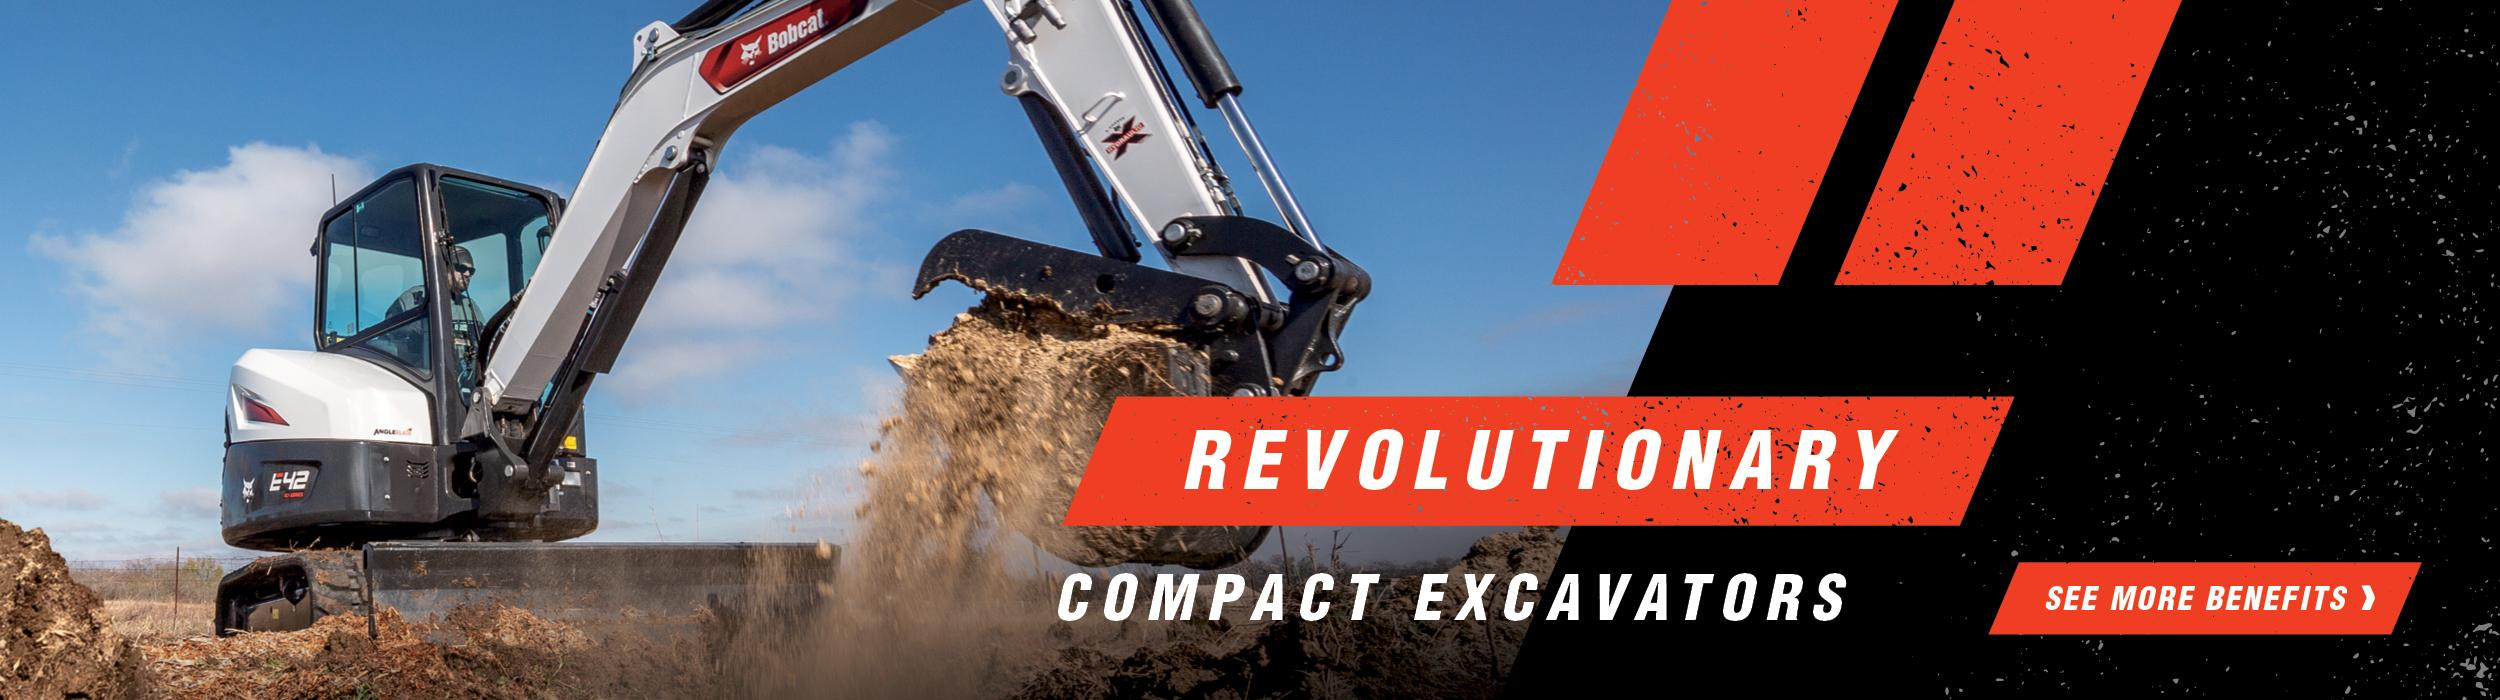 Graphic of Revolutionary R2-Series Compact Excavators